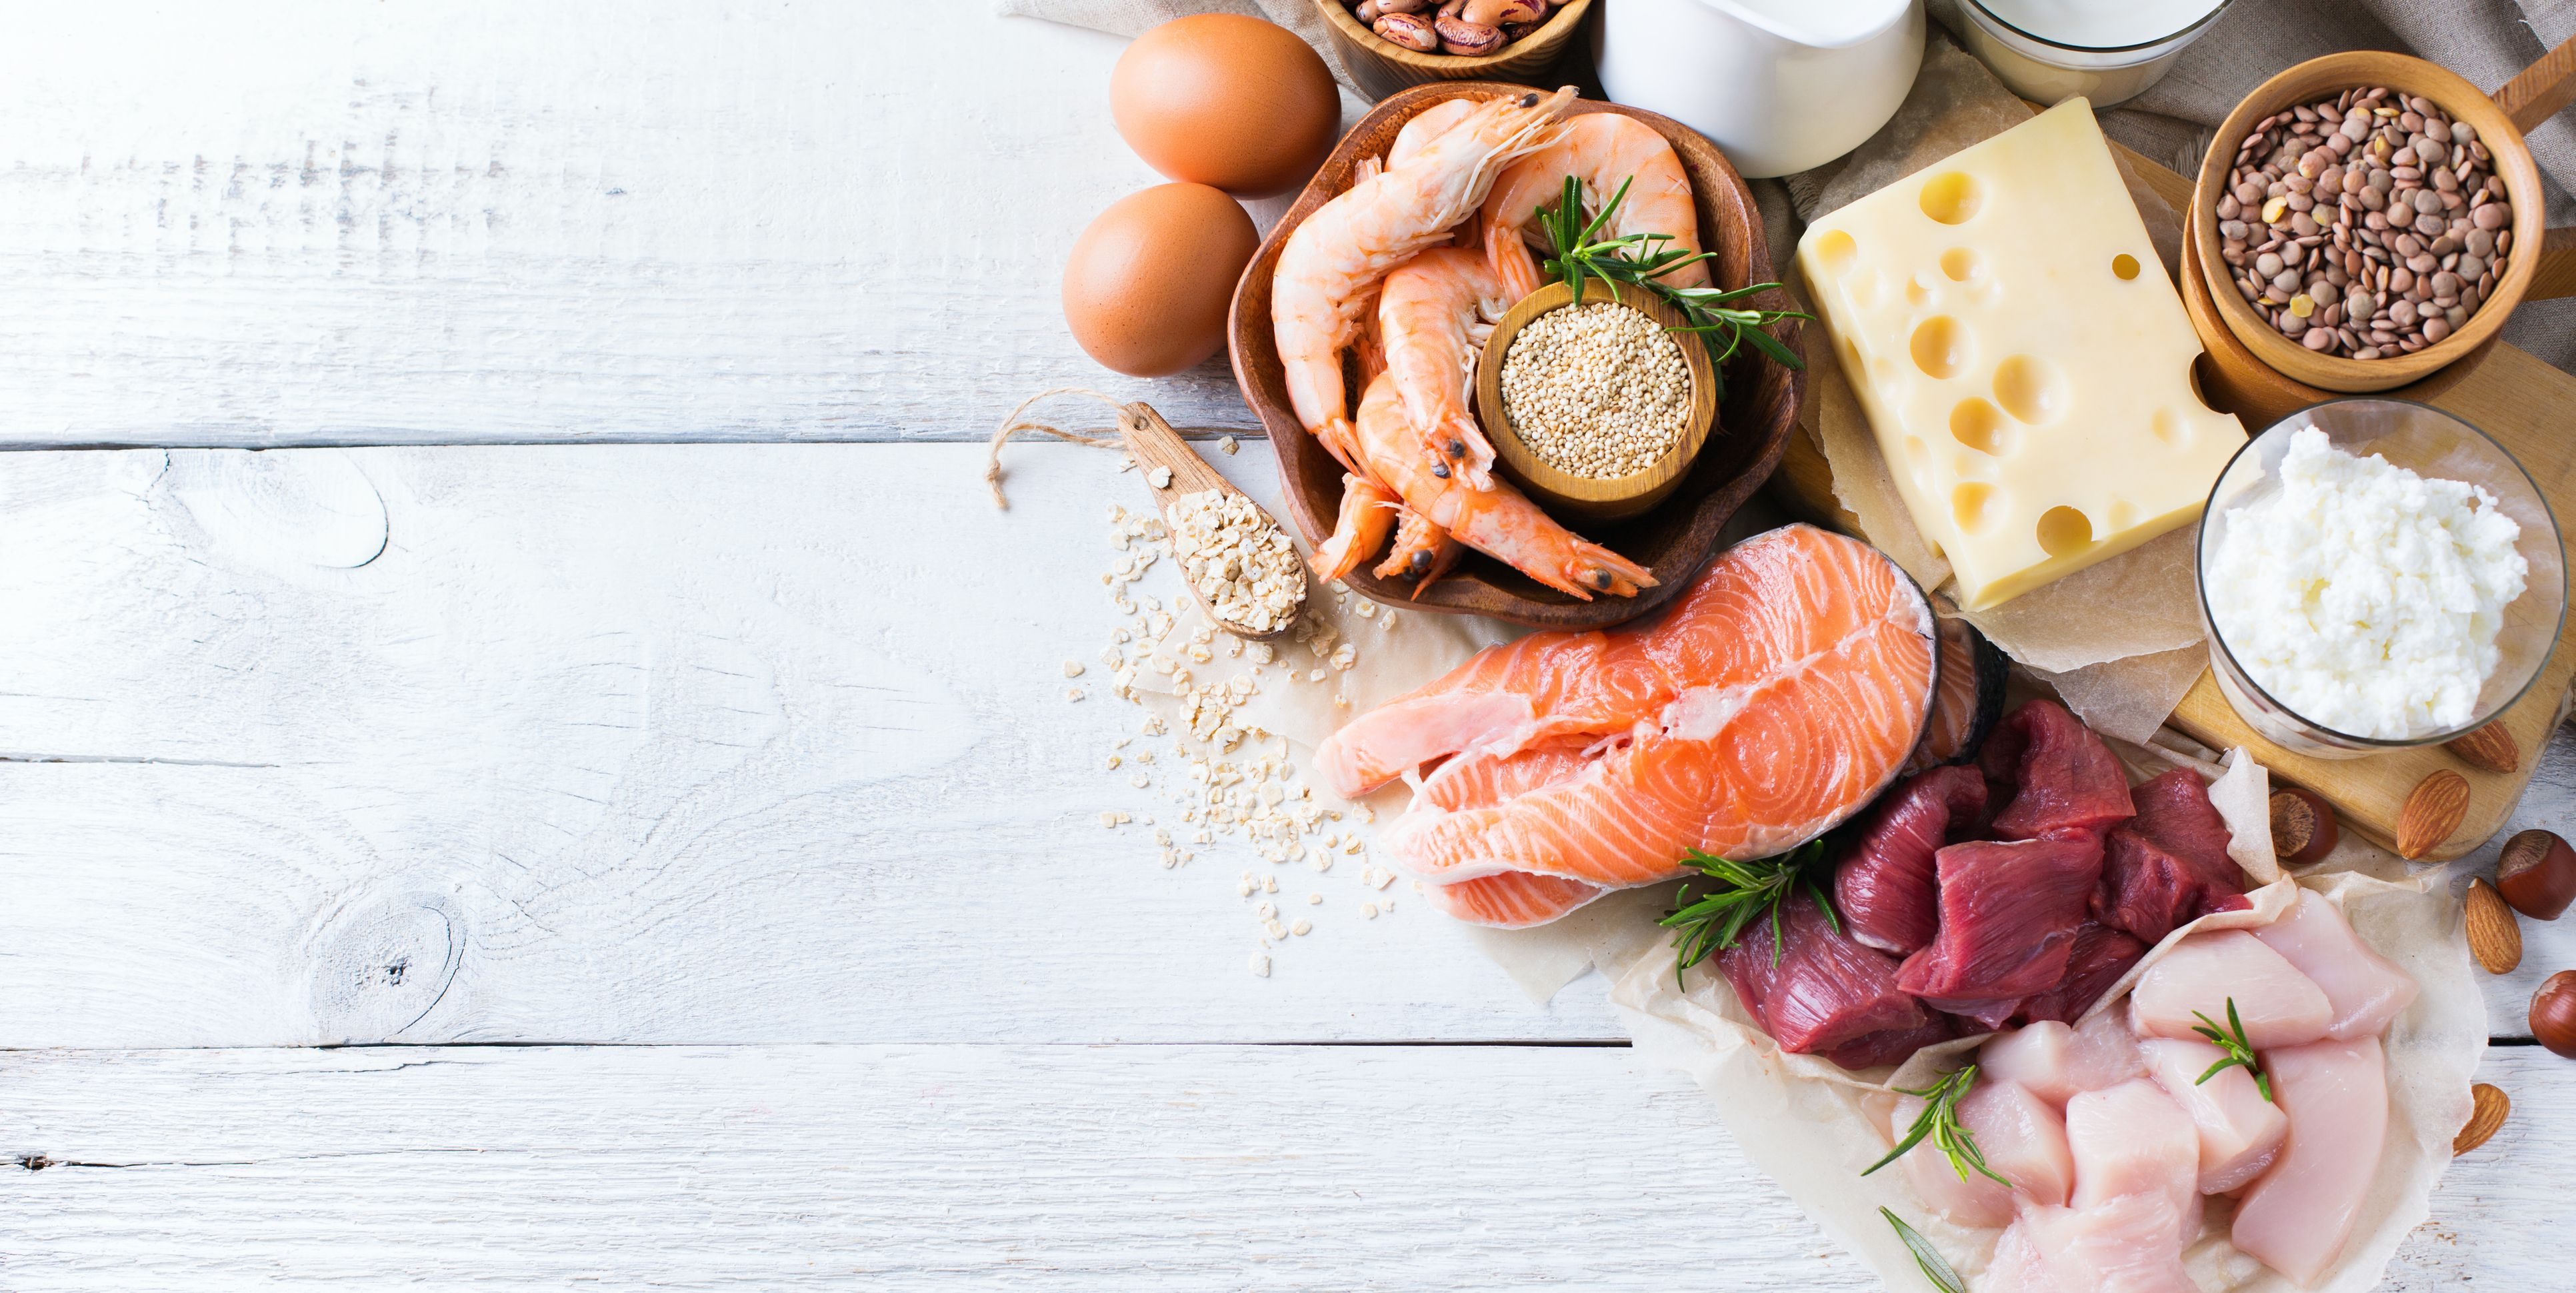 bestpsources of roteinand body building food